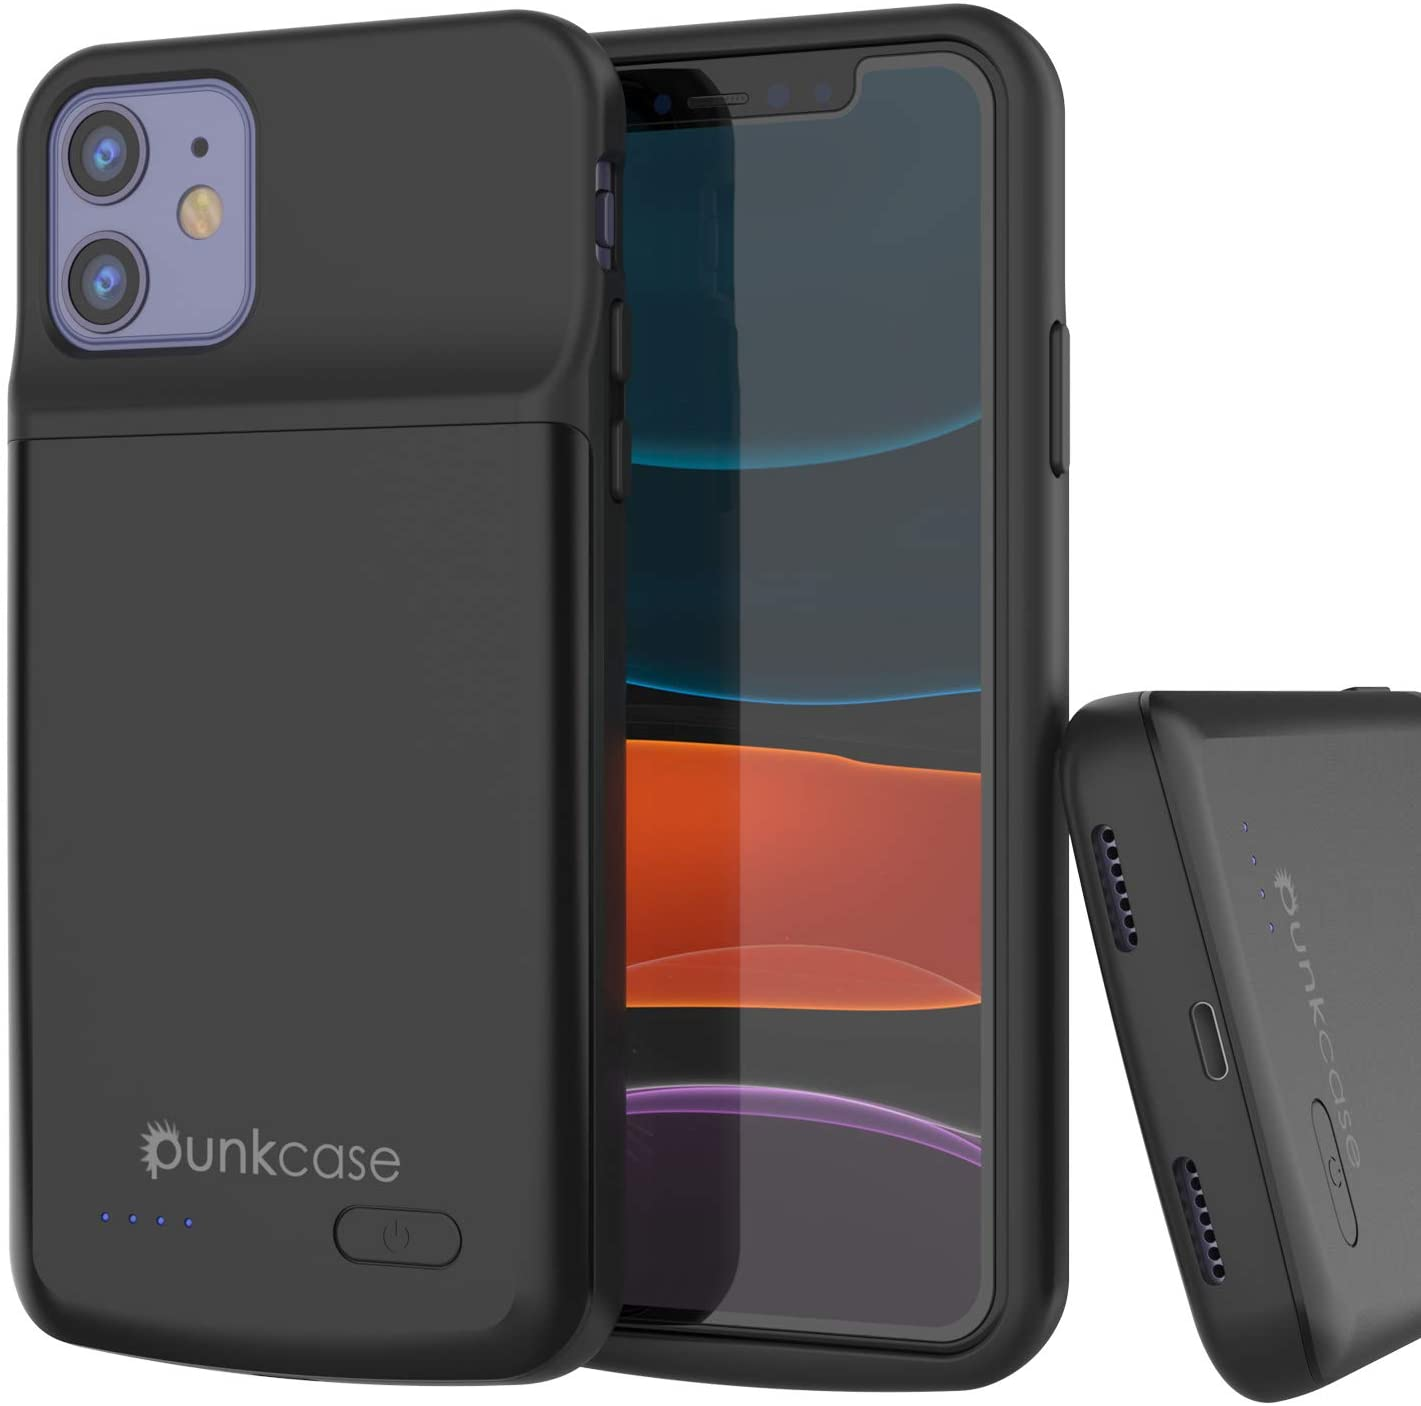 PunkJuice iPhone 11 Battery Case, 5000mAH Fast Charging Power Bank W/Screen Protector | IntelSwitch | Slim, Secure and Reliable Compatible with Apple iPhone 11 (6.1